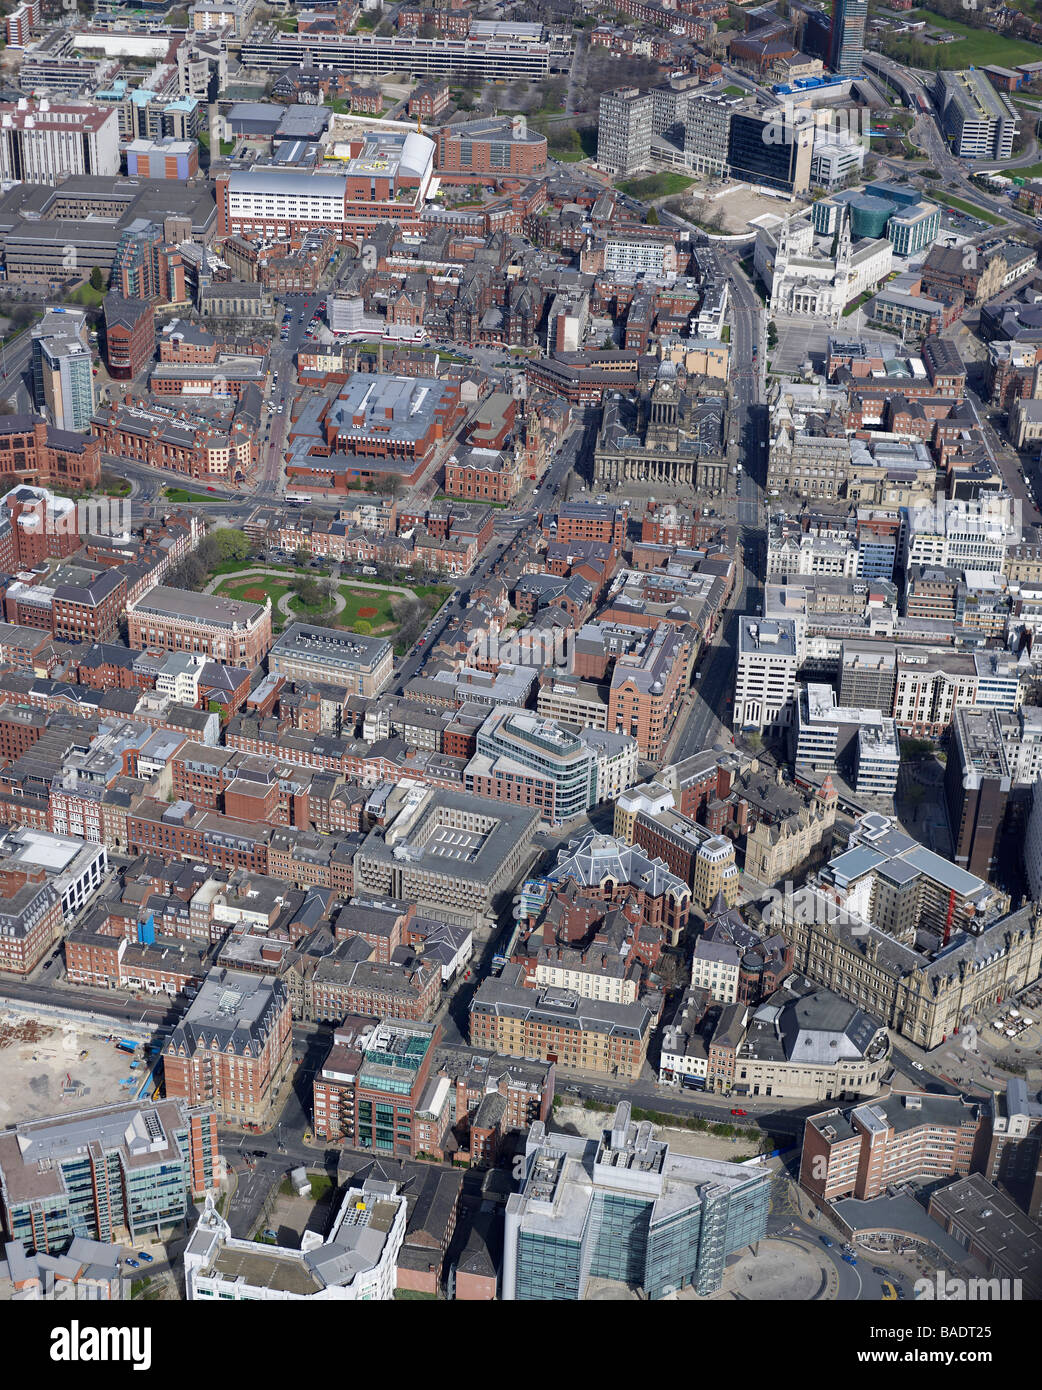 Aerial View of Leeds City Centre, 2009, Northern England - Stock Image